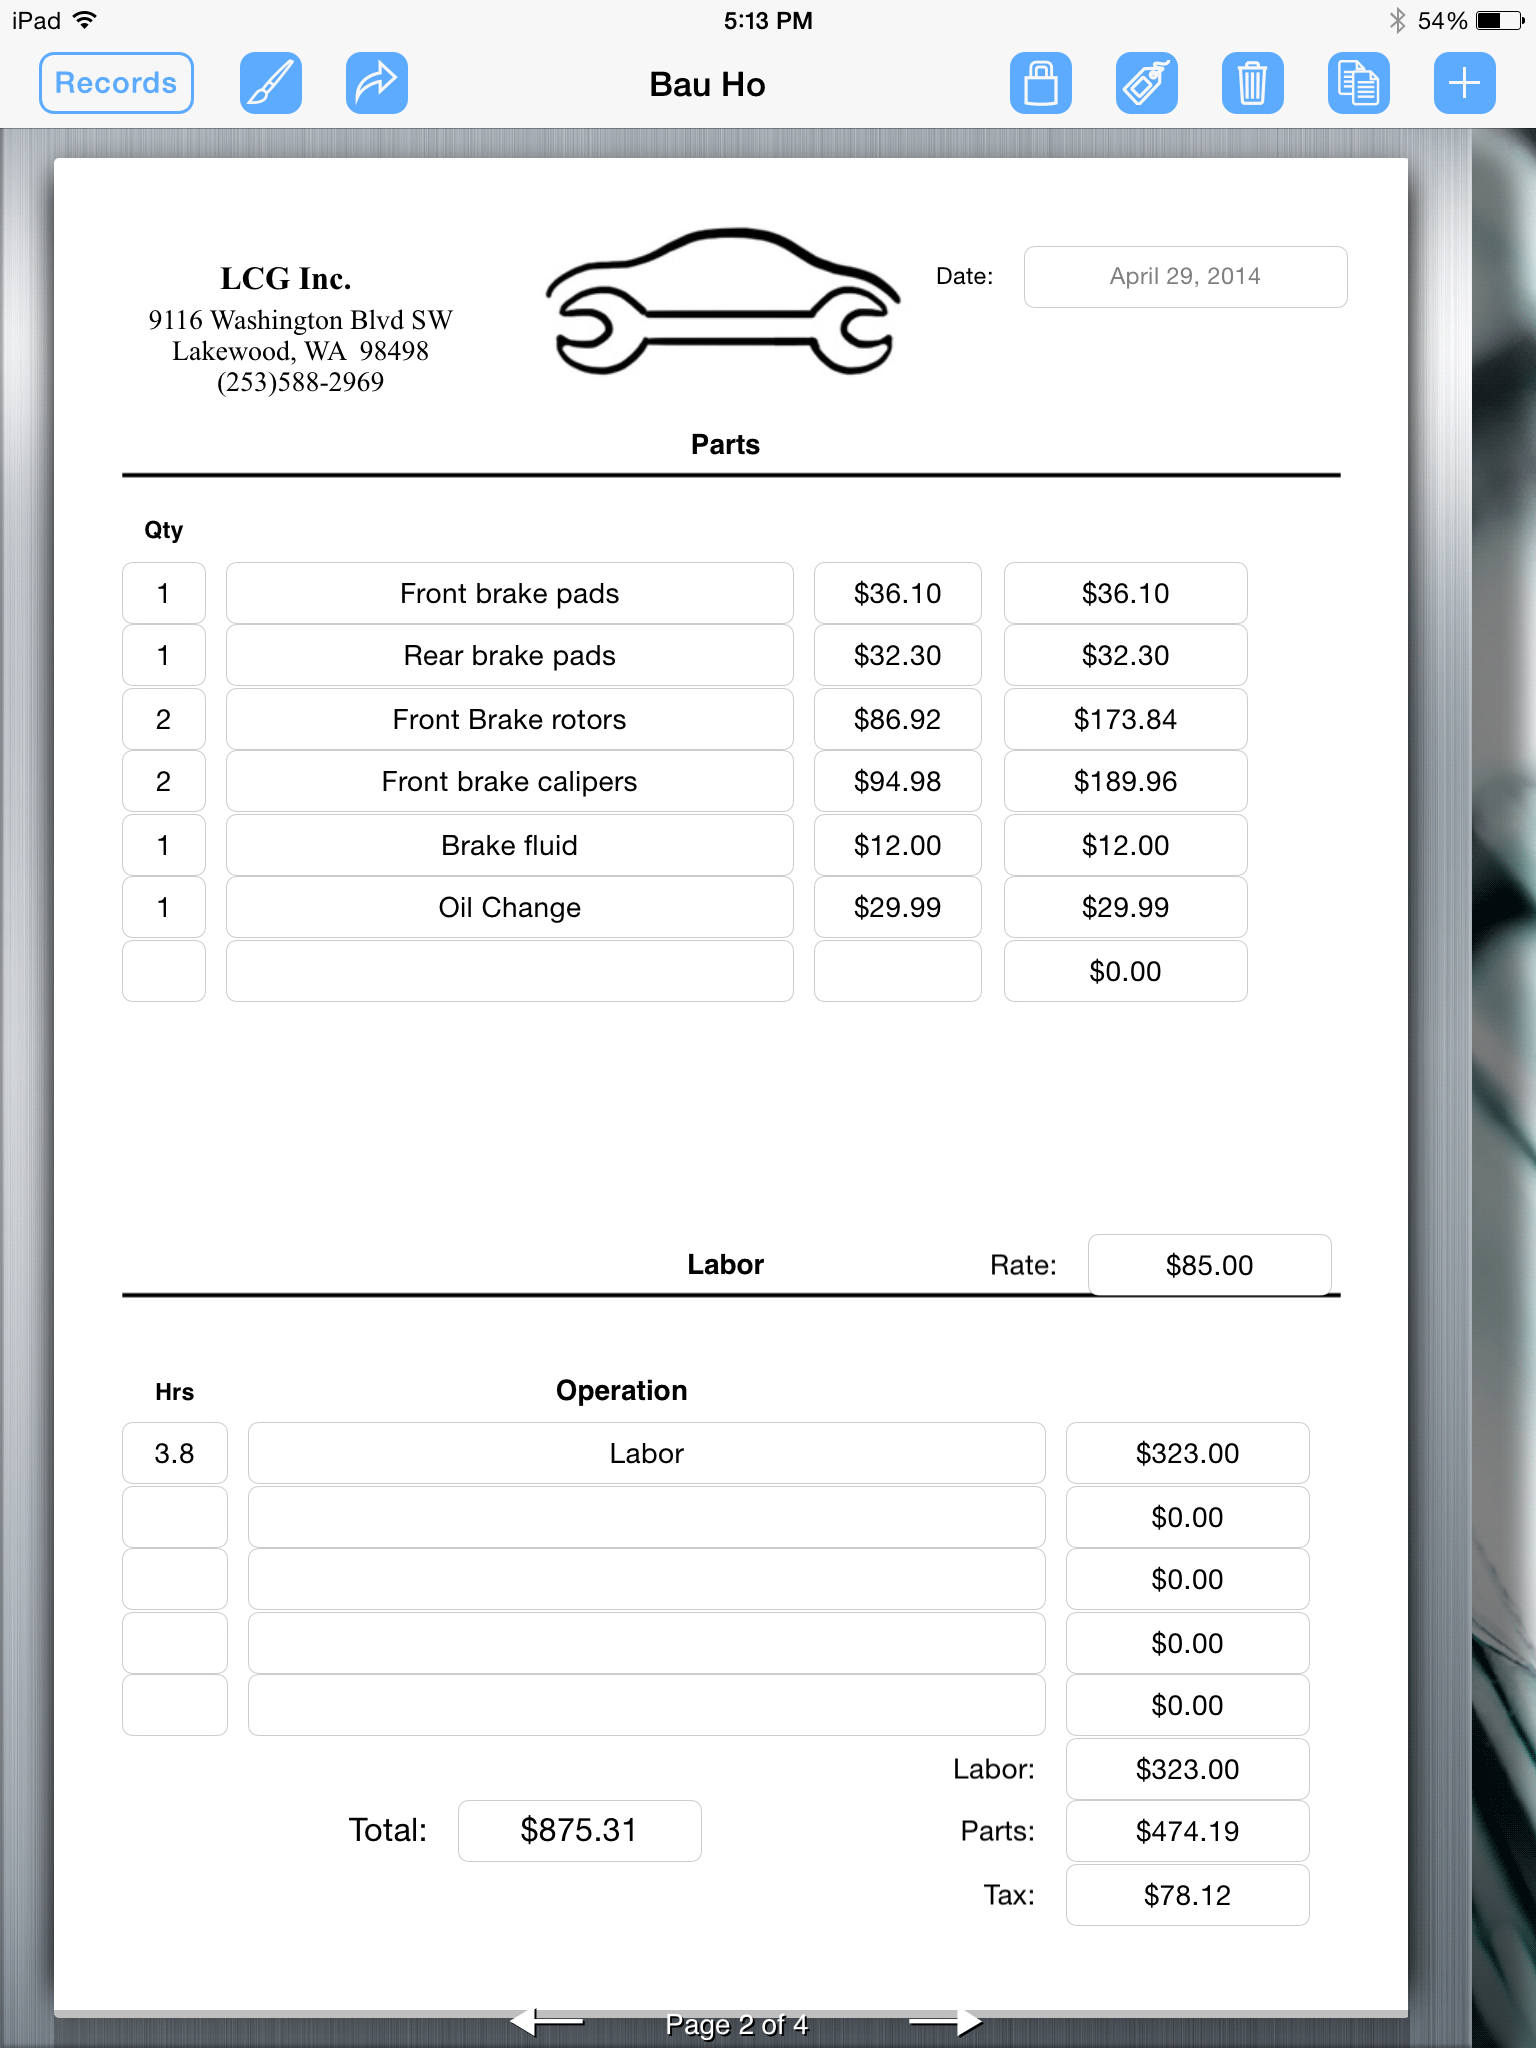 auto repair service uses ipad for creating an invoice form 0199